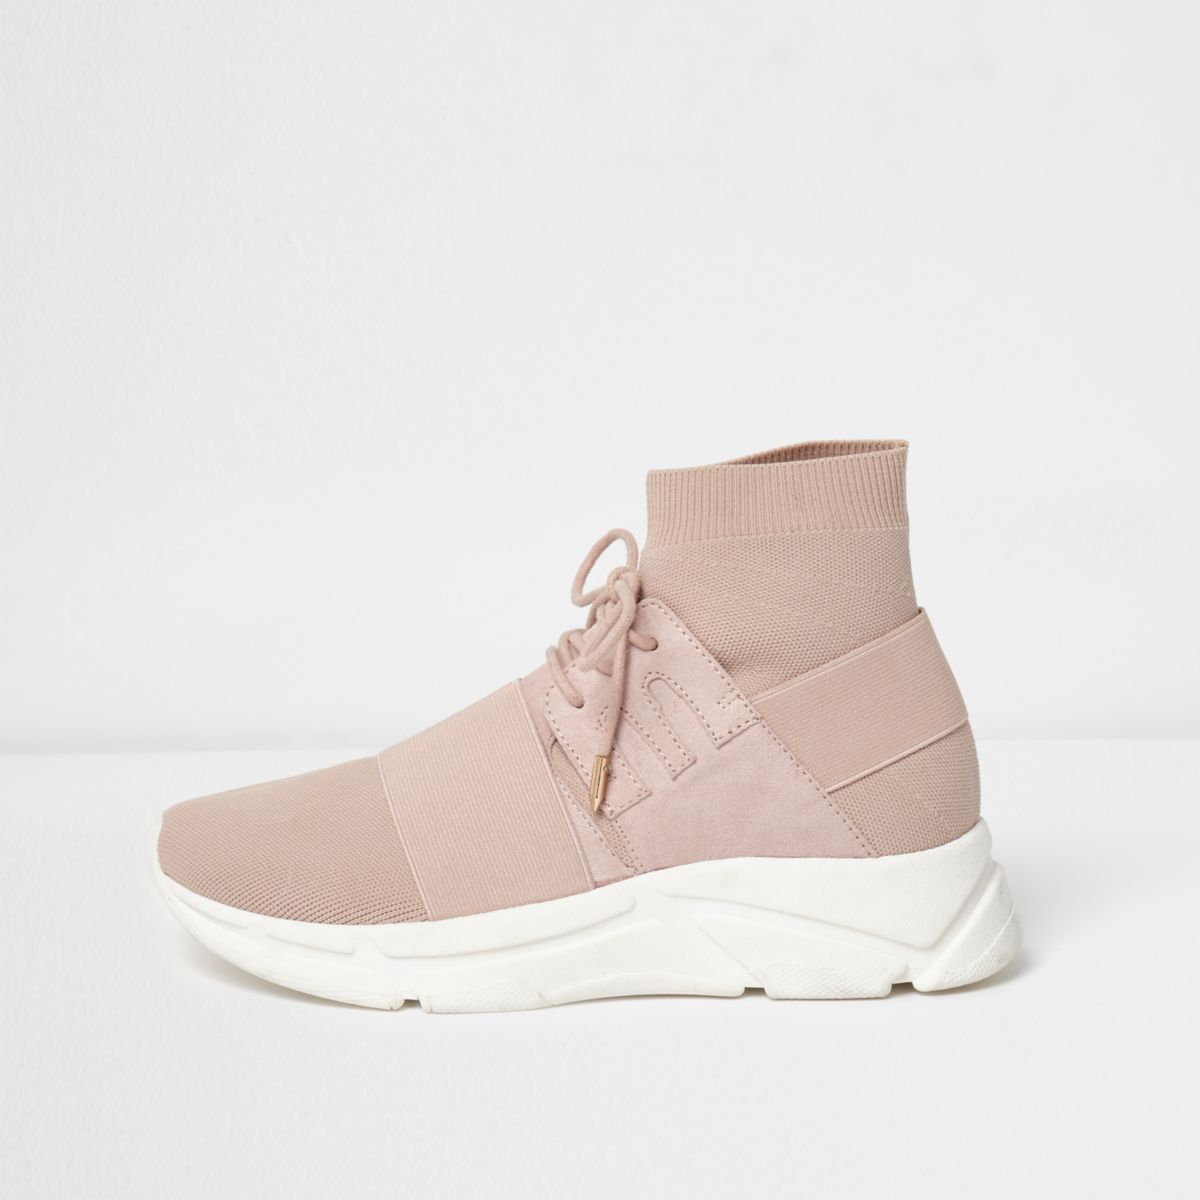 River Island Womens knitted runner sneakers